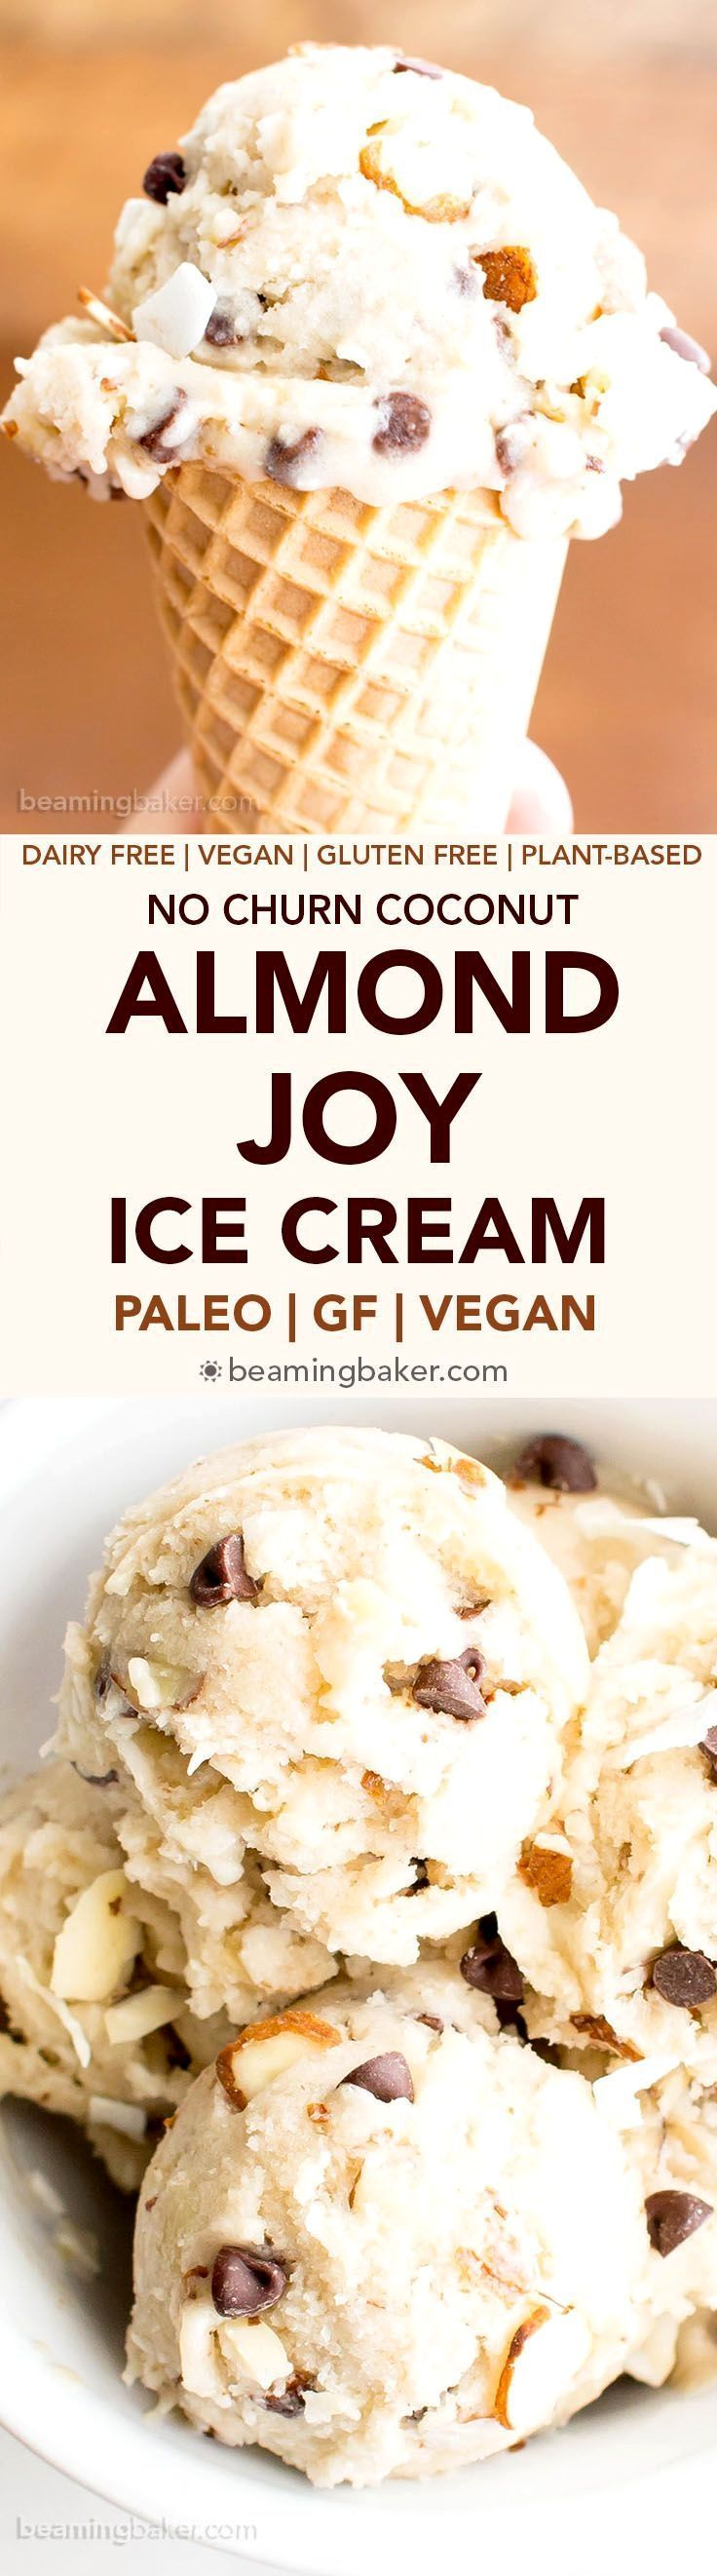 Paleo Vegan Almond Joy Ice Cream: a 7 ingredient recipe for deliciously creamy, no churn ice cream bursting with coconut, chocolate chips, and almonds. #diet